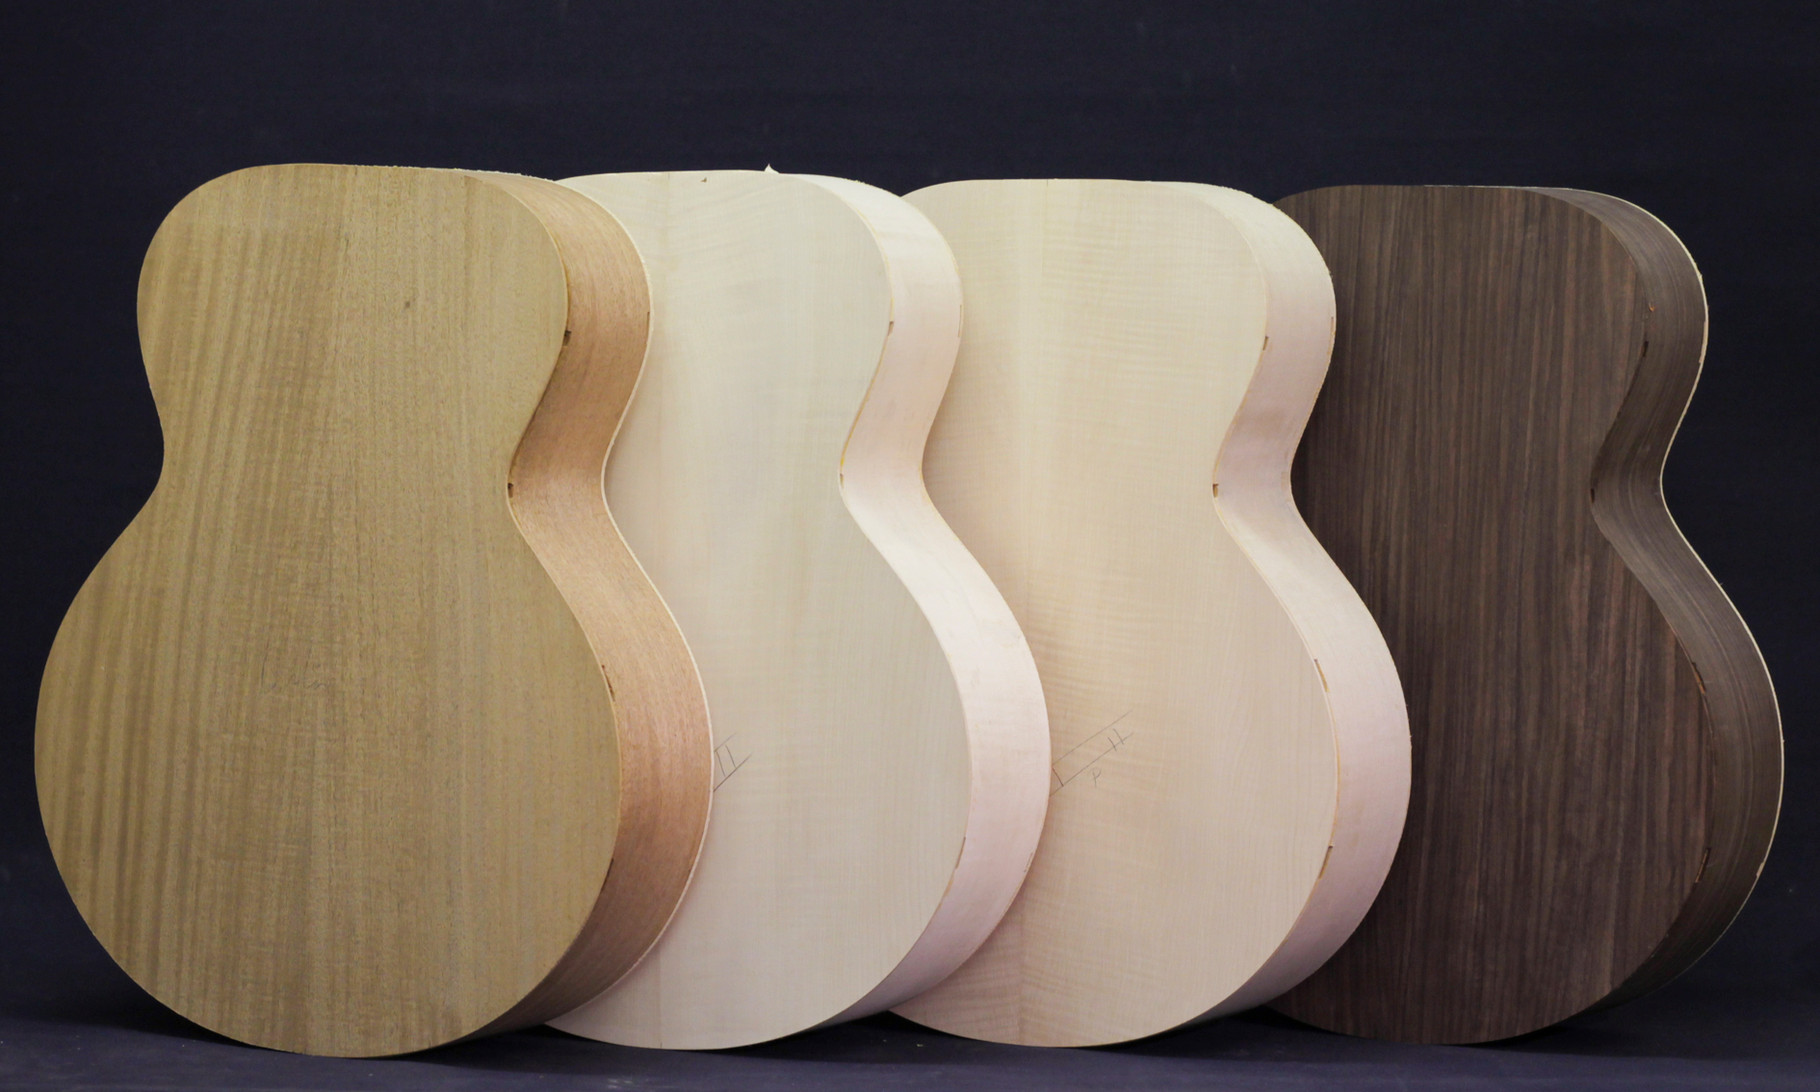 Left to right: Mahogany, Maple (I), Maple (II), Rosewood